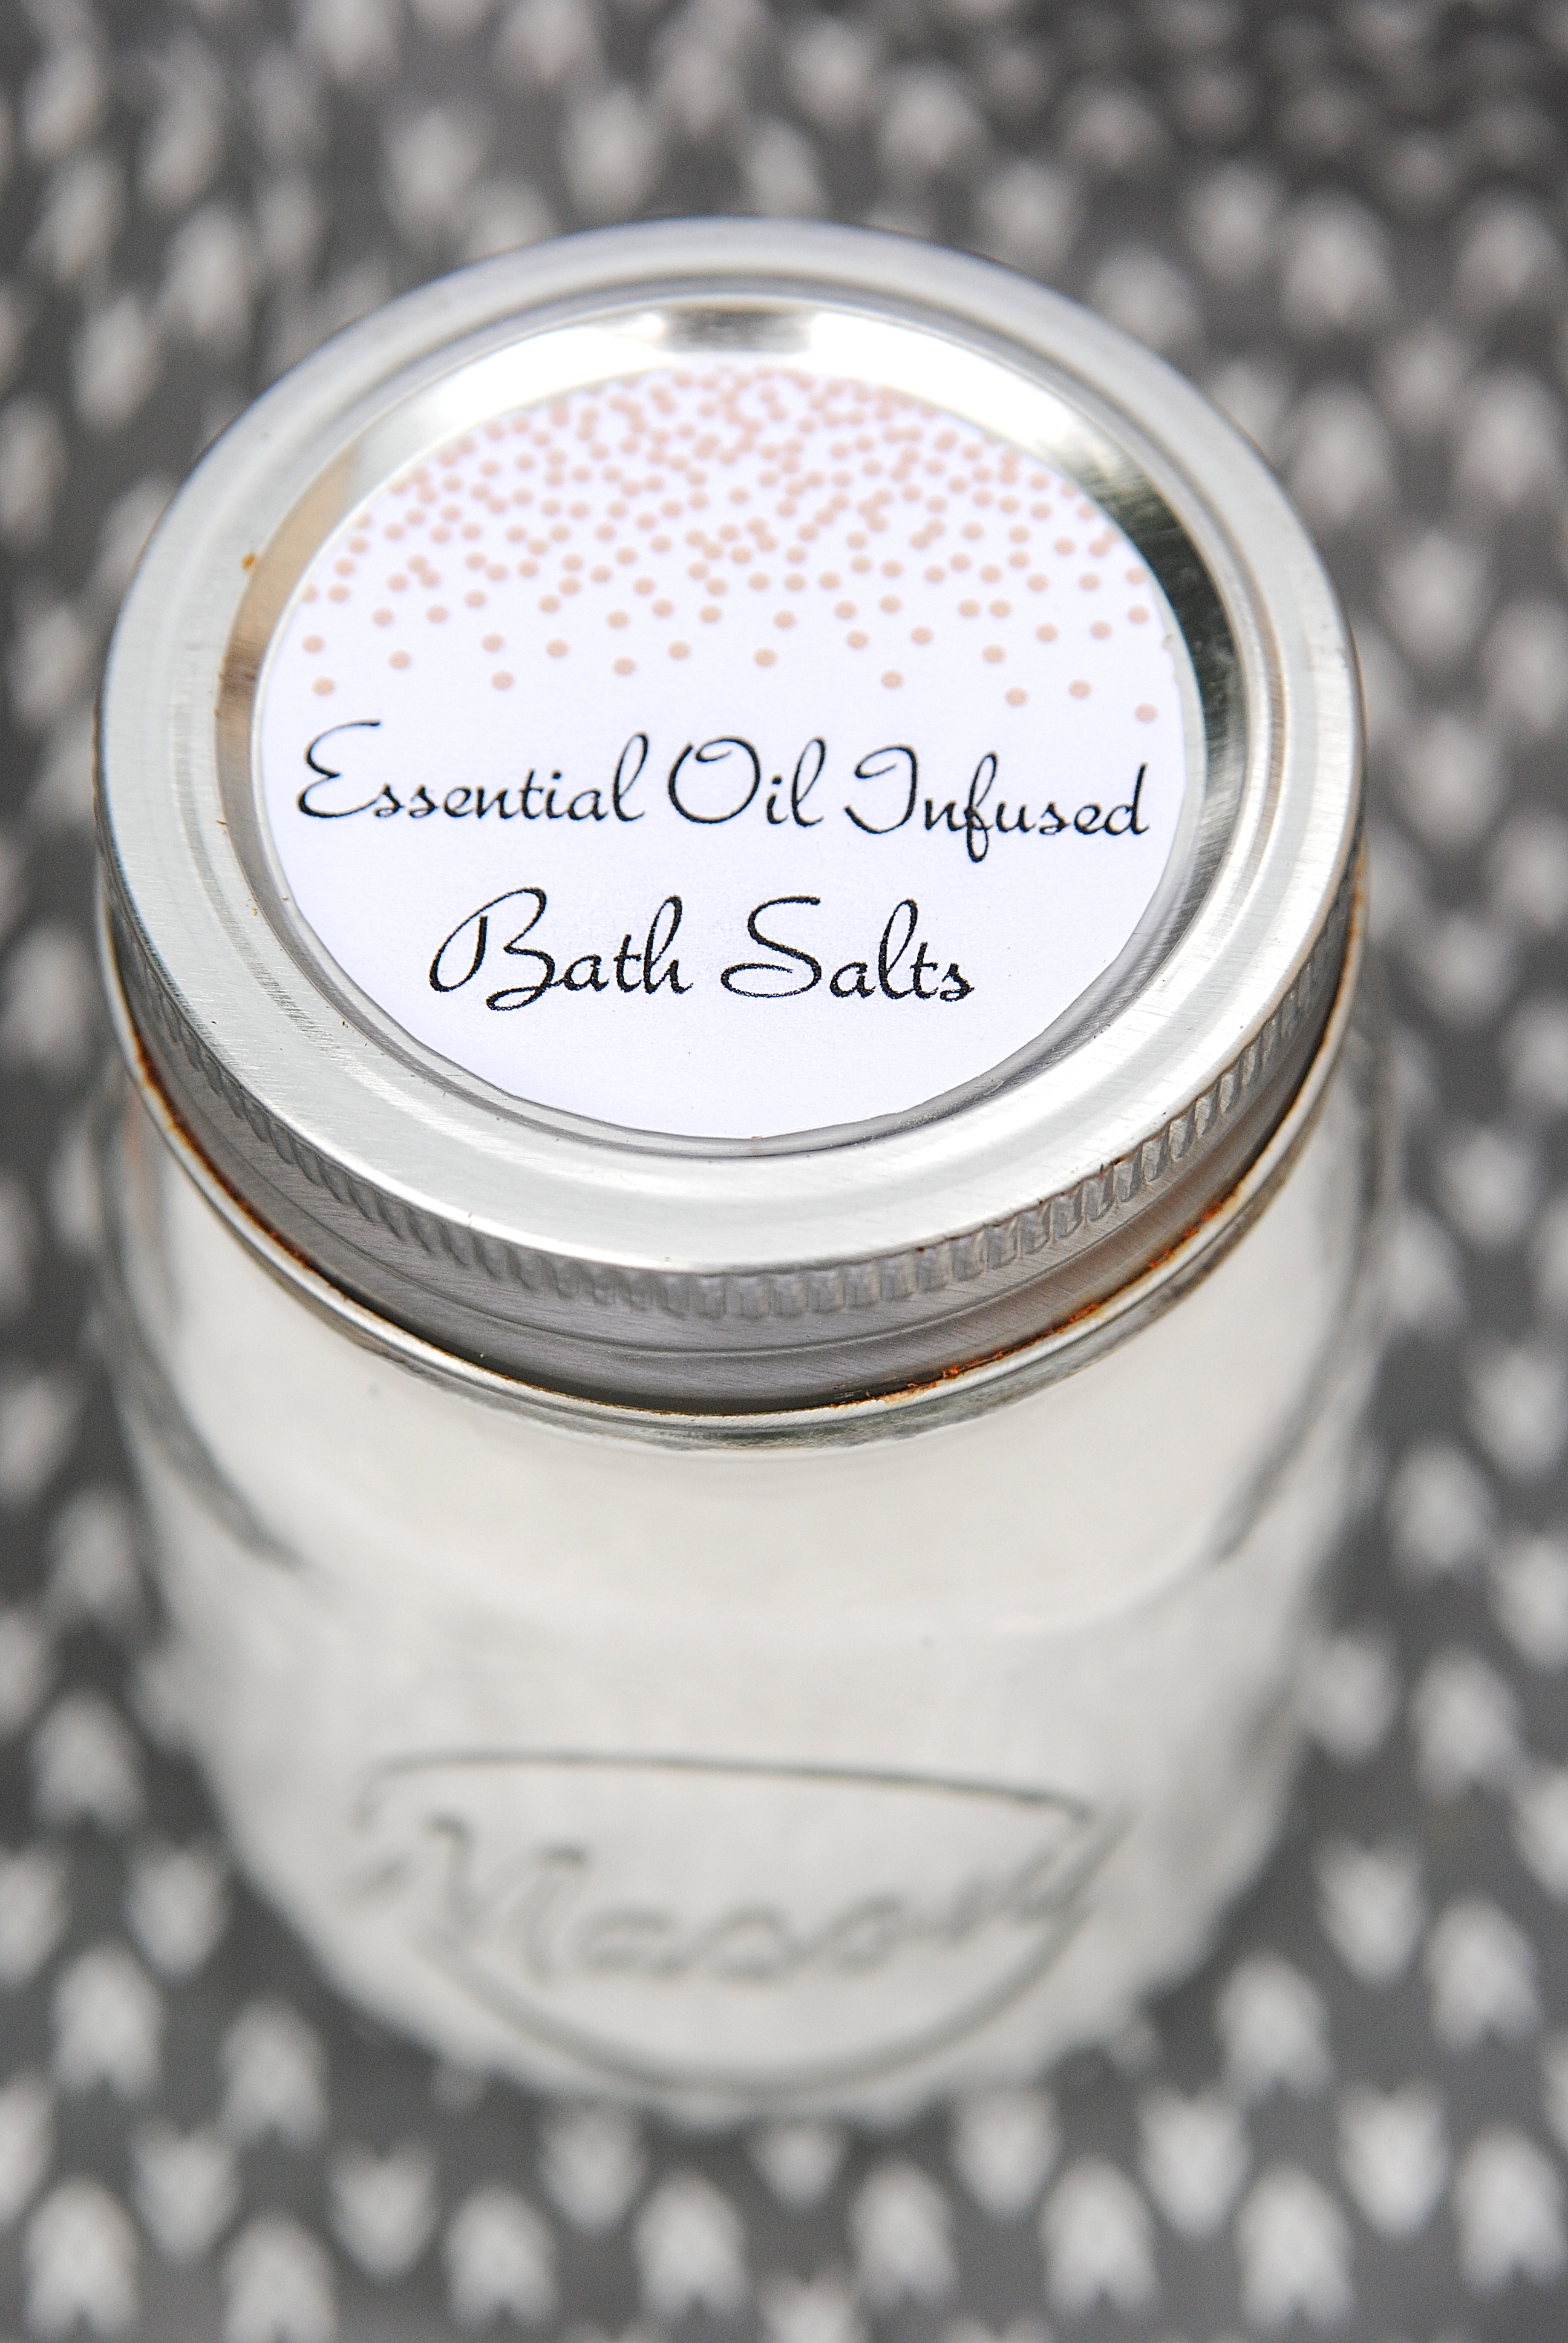 diy mother u0026 39 s day gift idea  with free printable labels